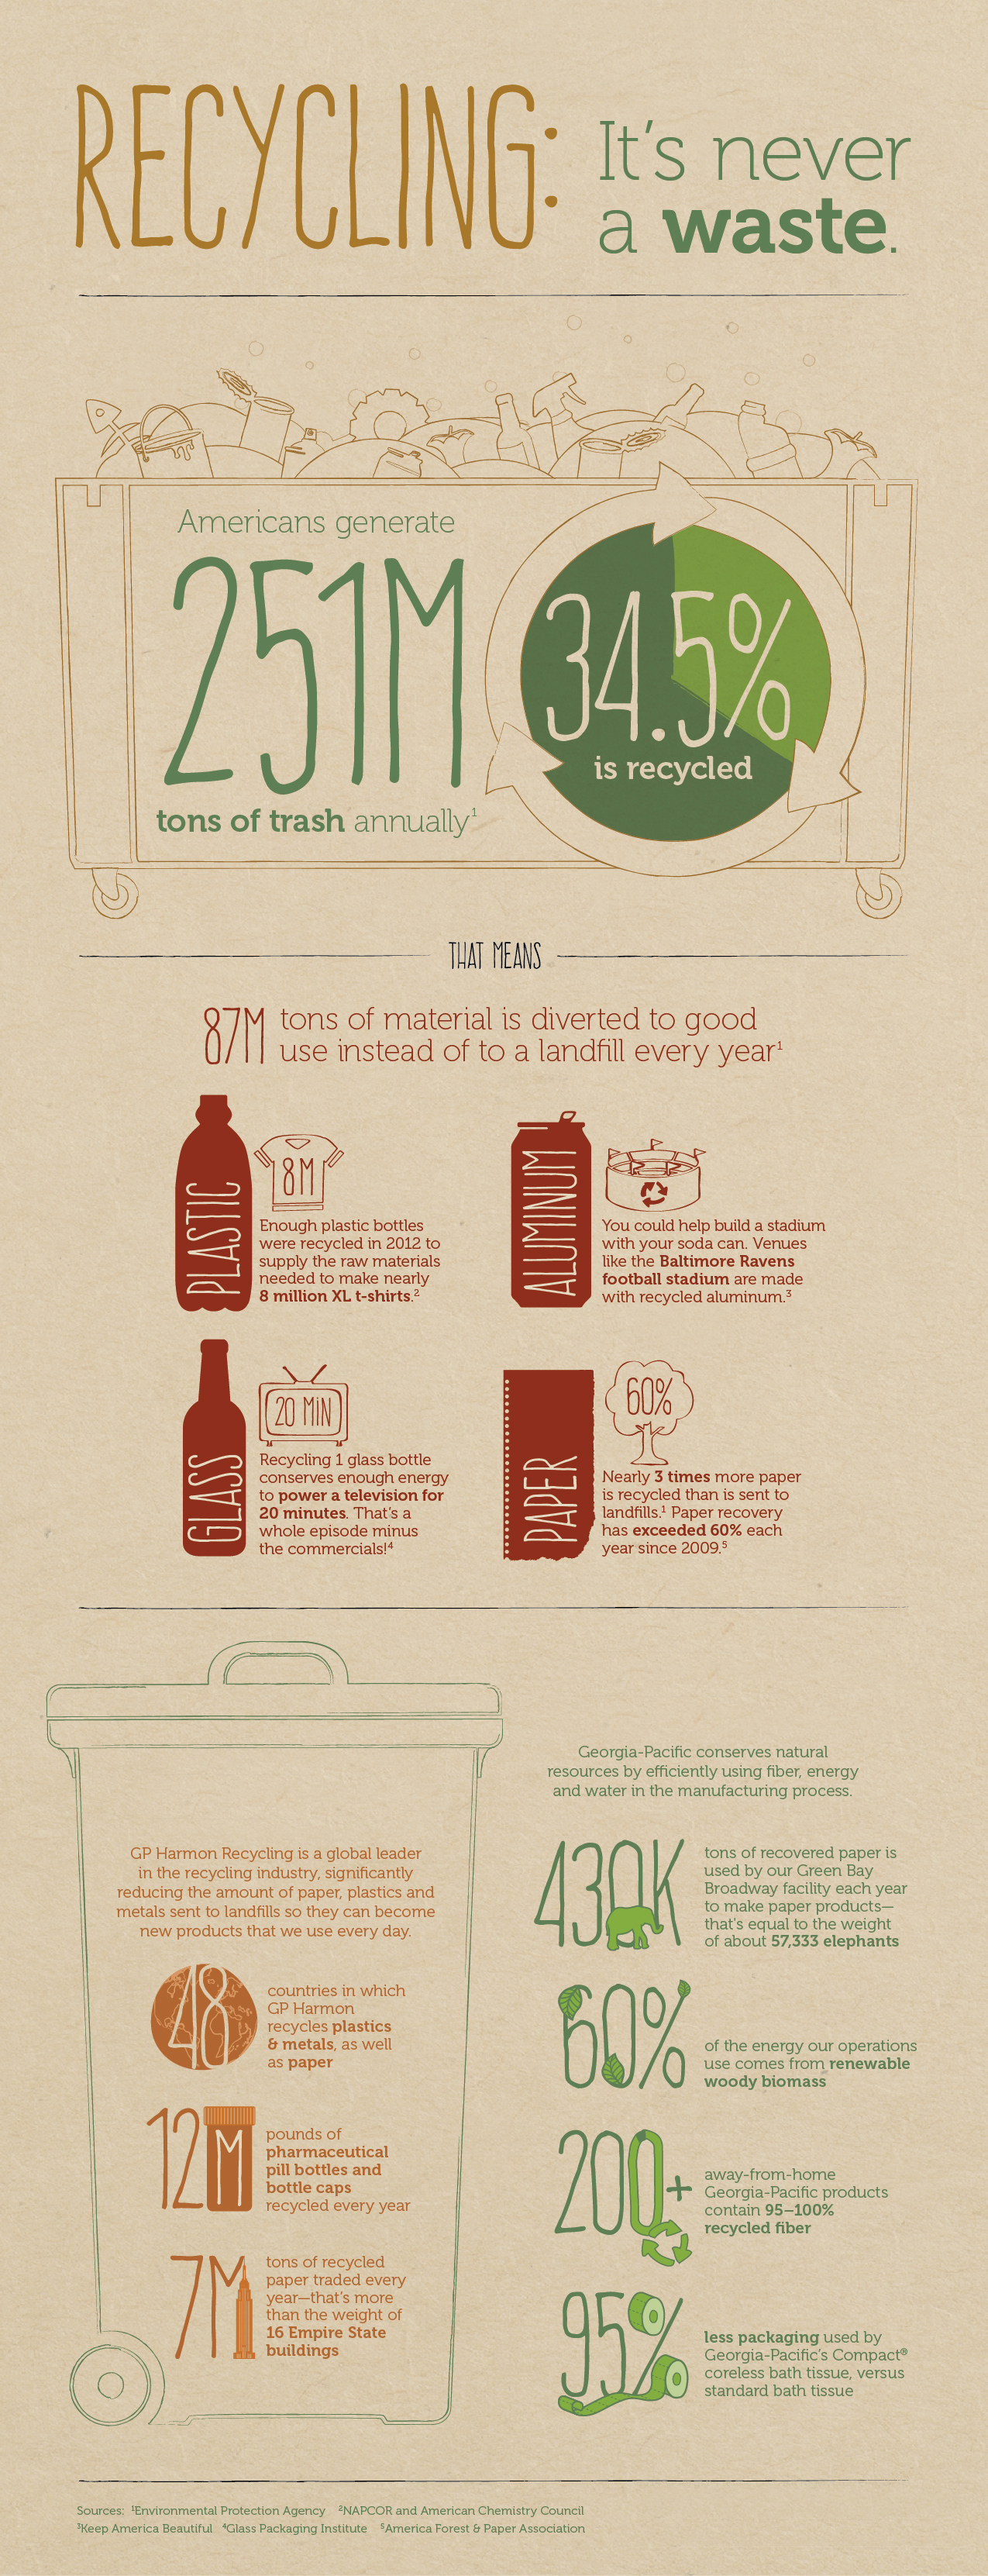 Recycling: It's never a waste Infographic